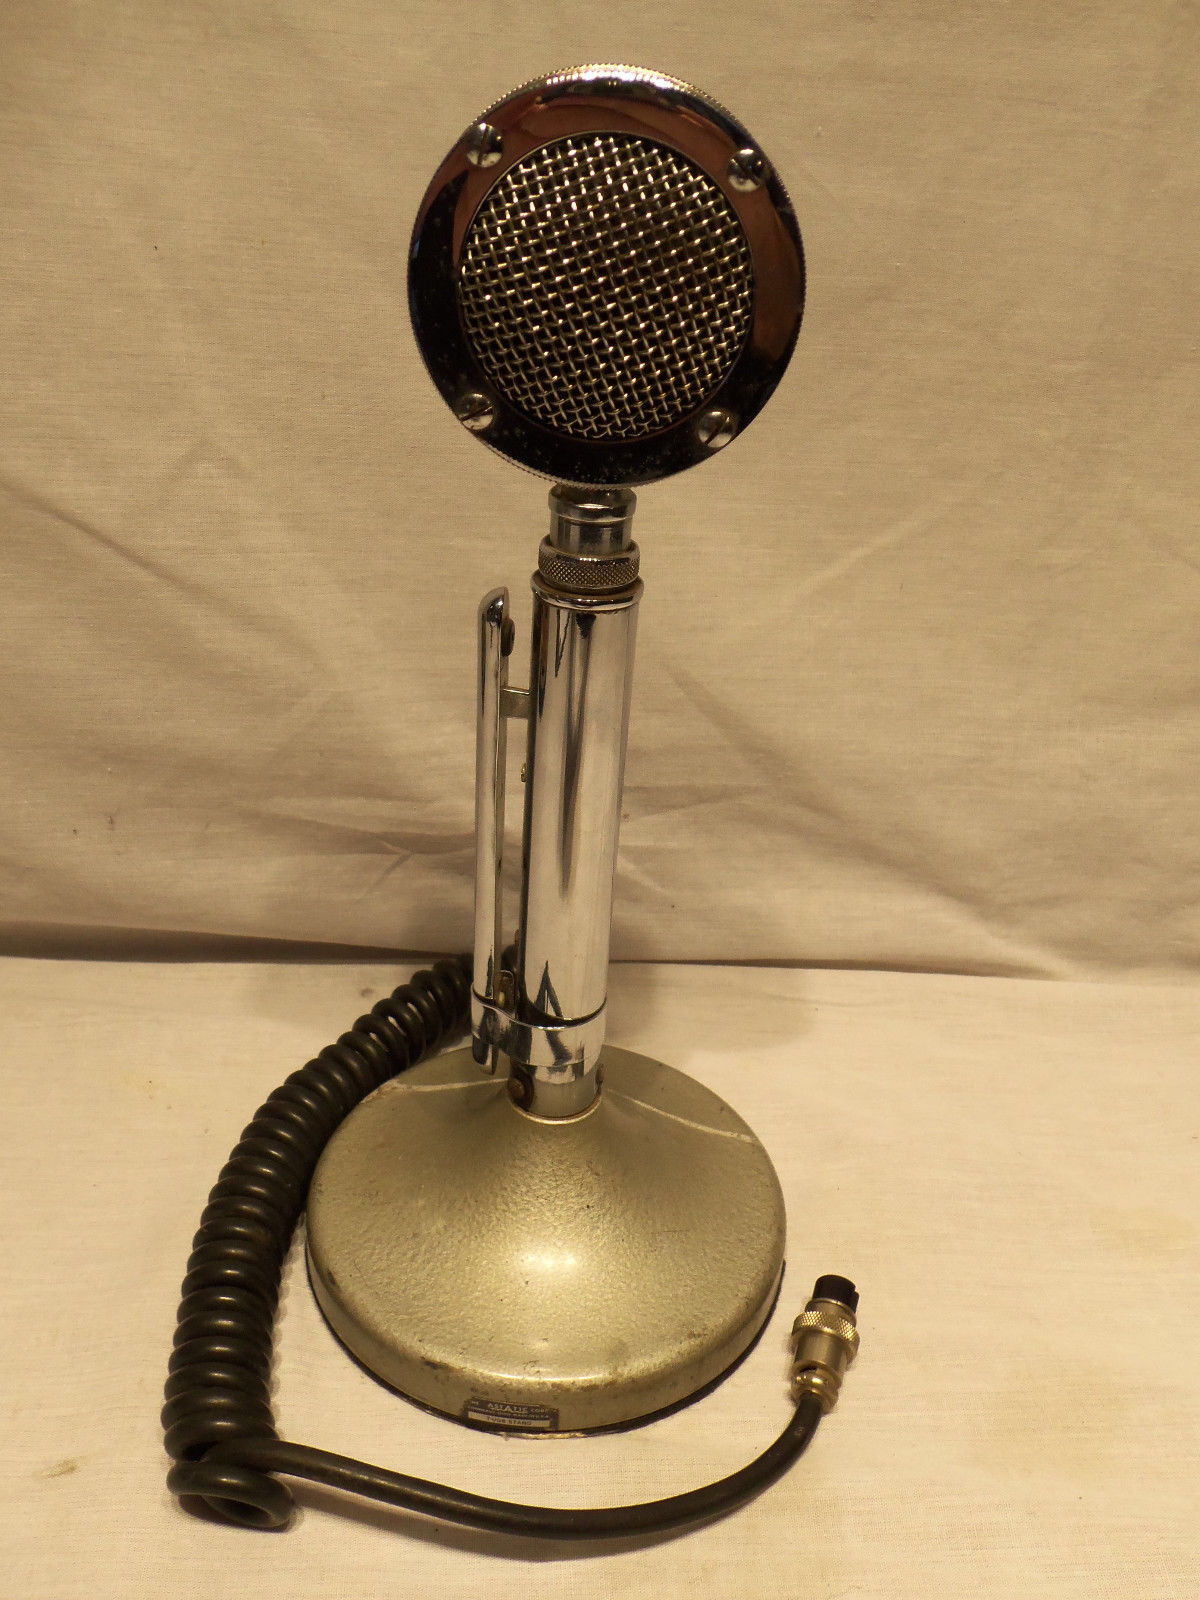 used vintage astatic microphone for sale 31 ads in us. Black Bedroom Furniture Sets. Home Design Ideas